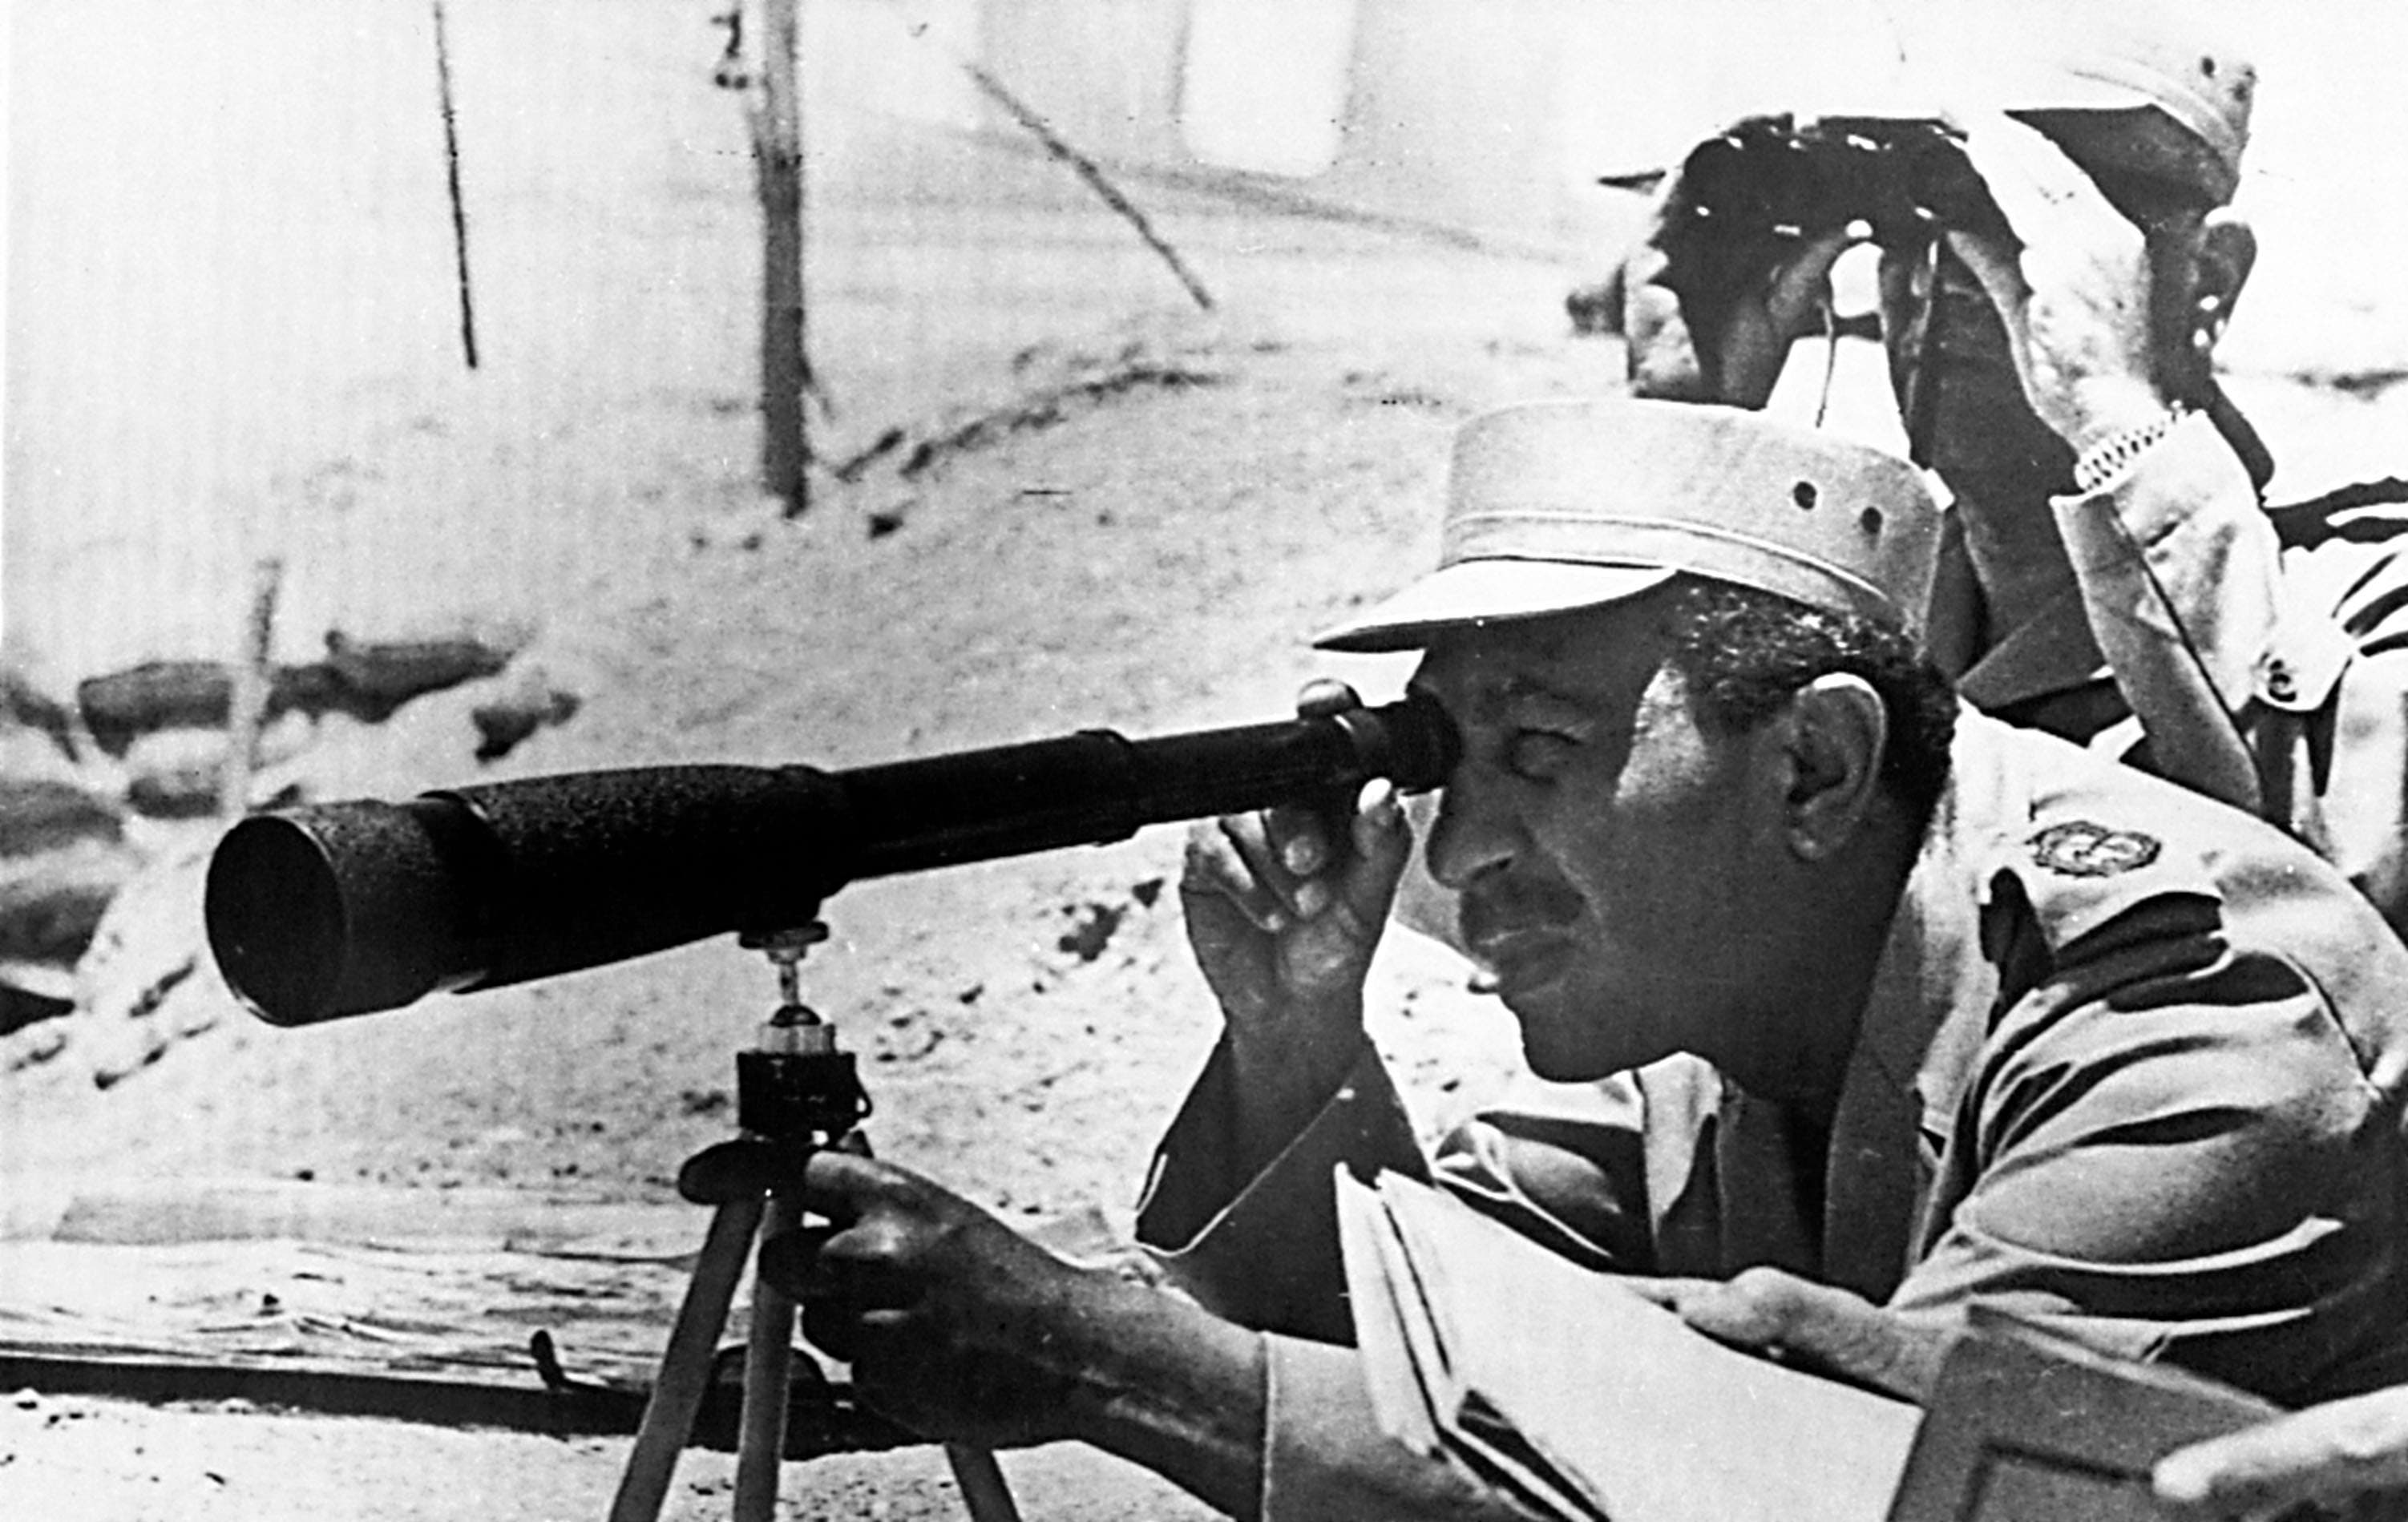 Making a plan: Egyptian President Anwar al-Sadat is seen as he peers through a telescope during a visit at the frontlines to Israel, at Sinai Peninsula, on June 4, 1973.